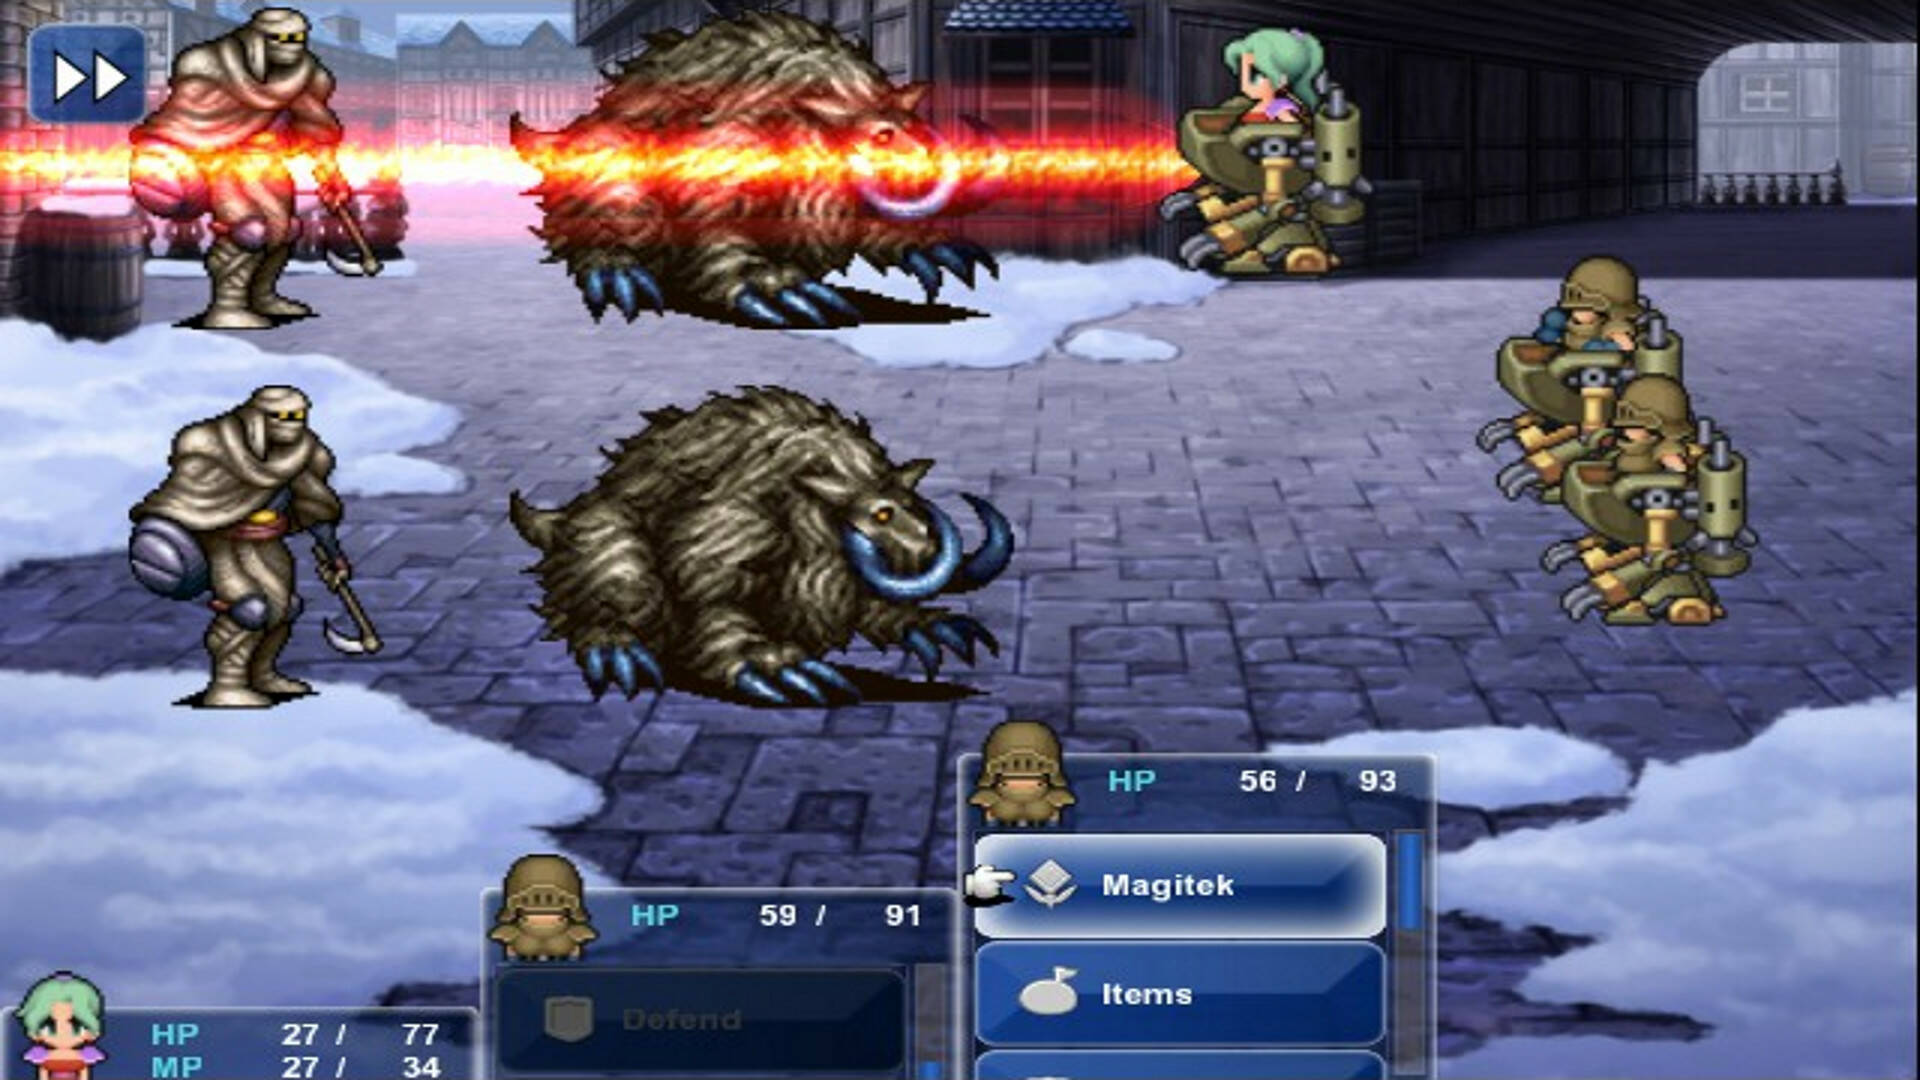 Final Fantasy VI Remake is a dream that becomes (almost) reality